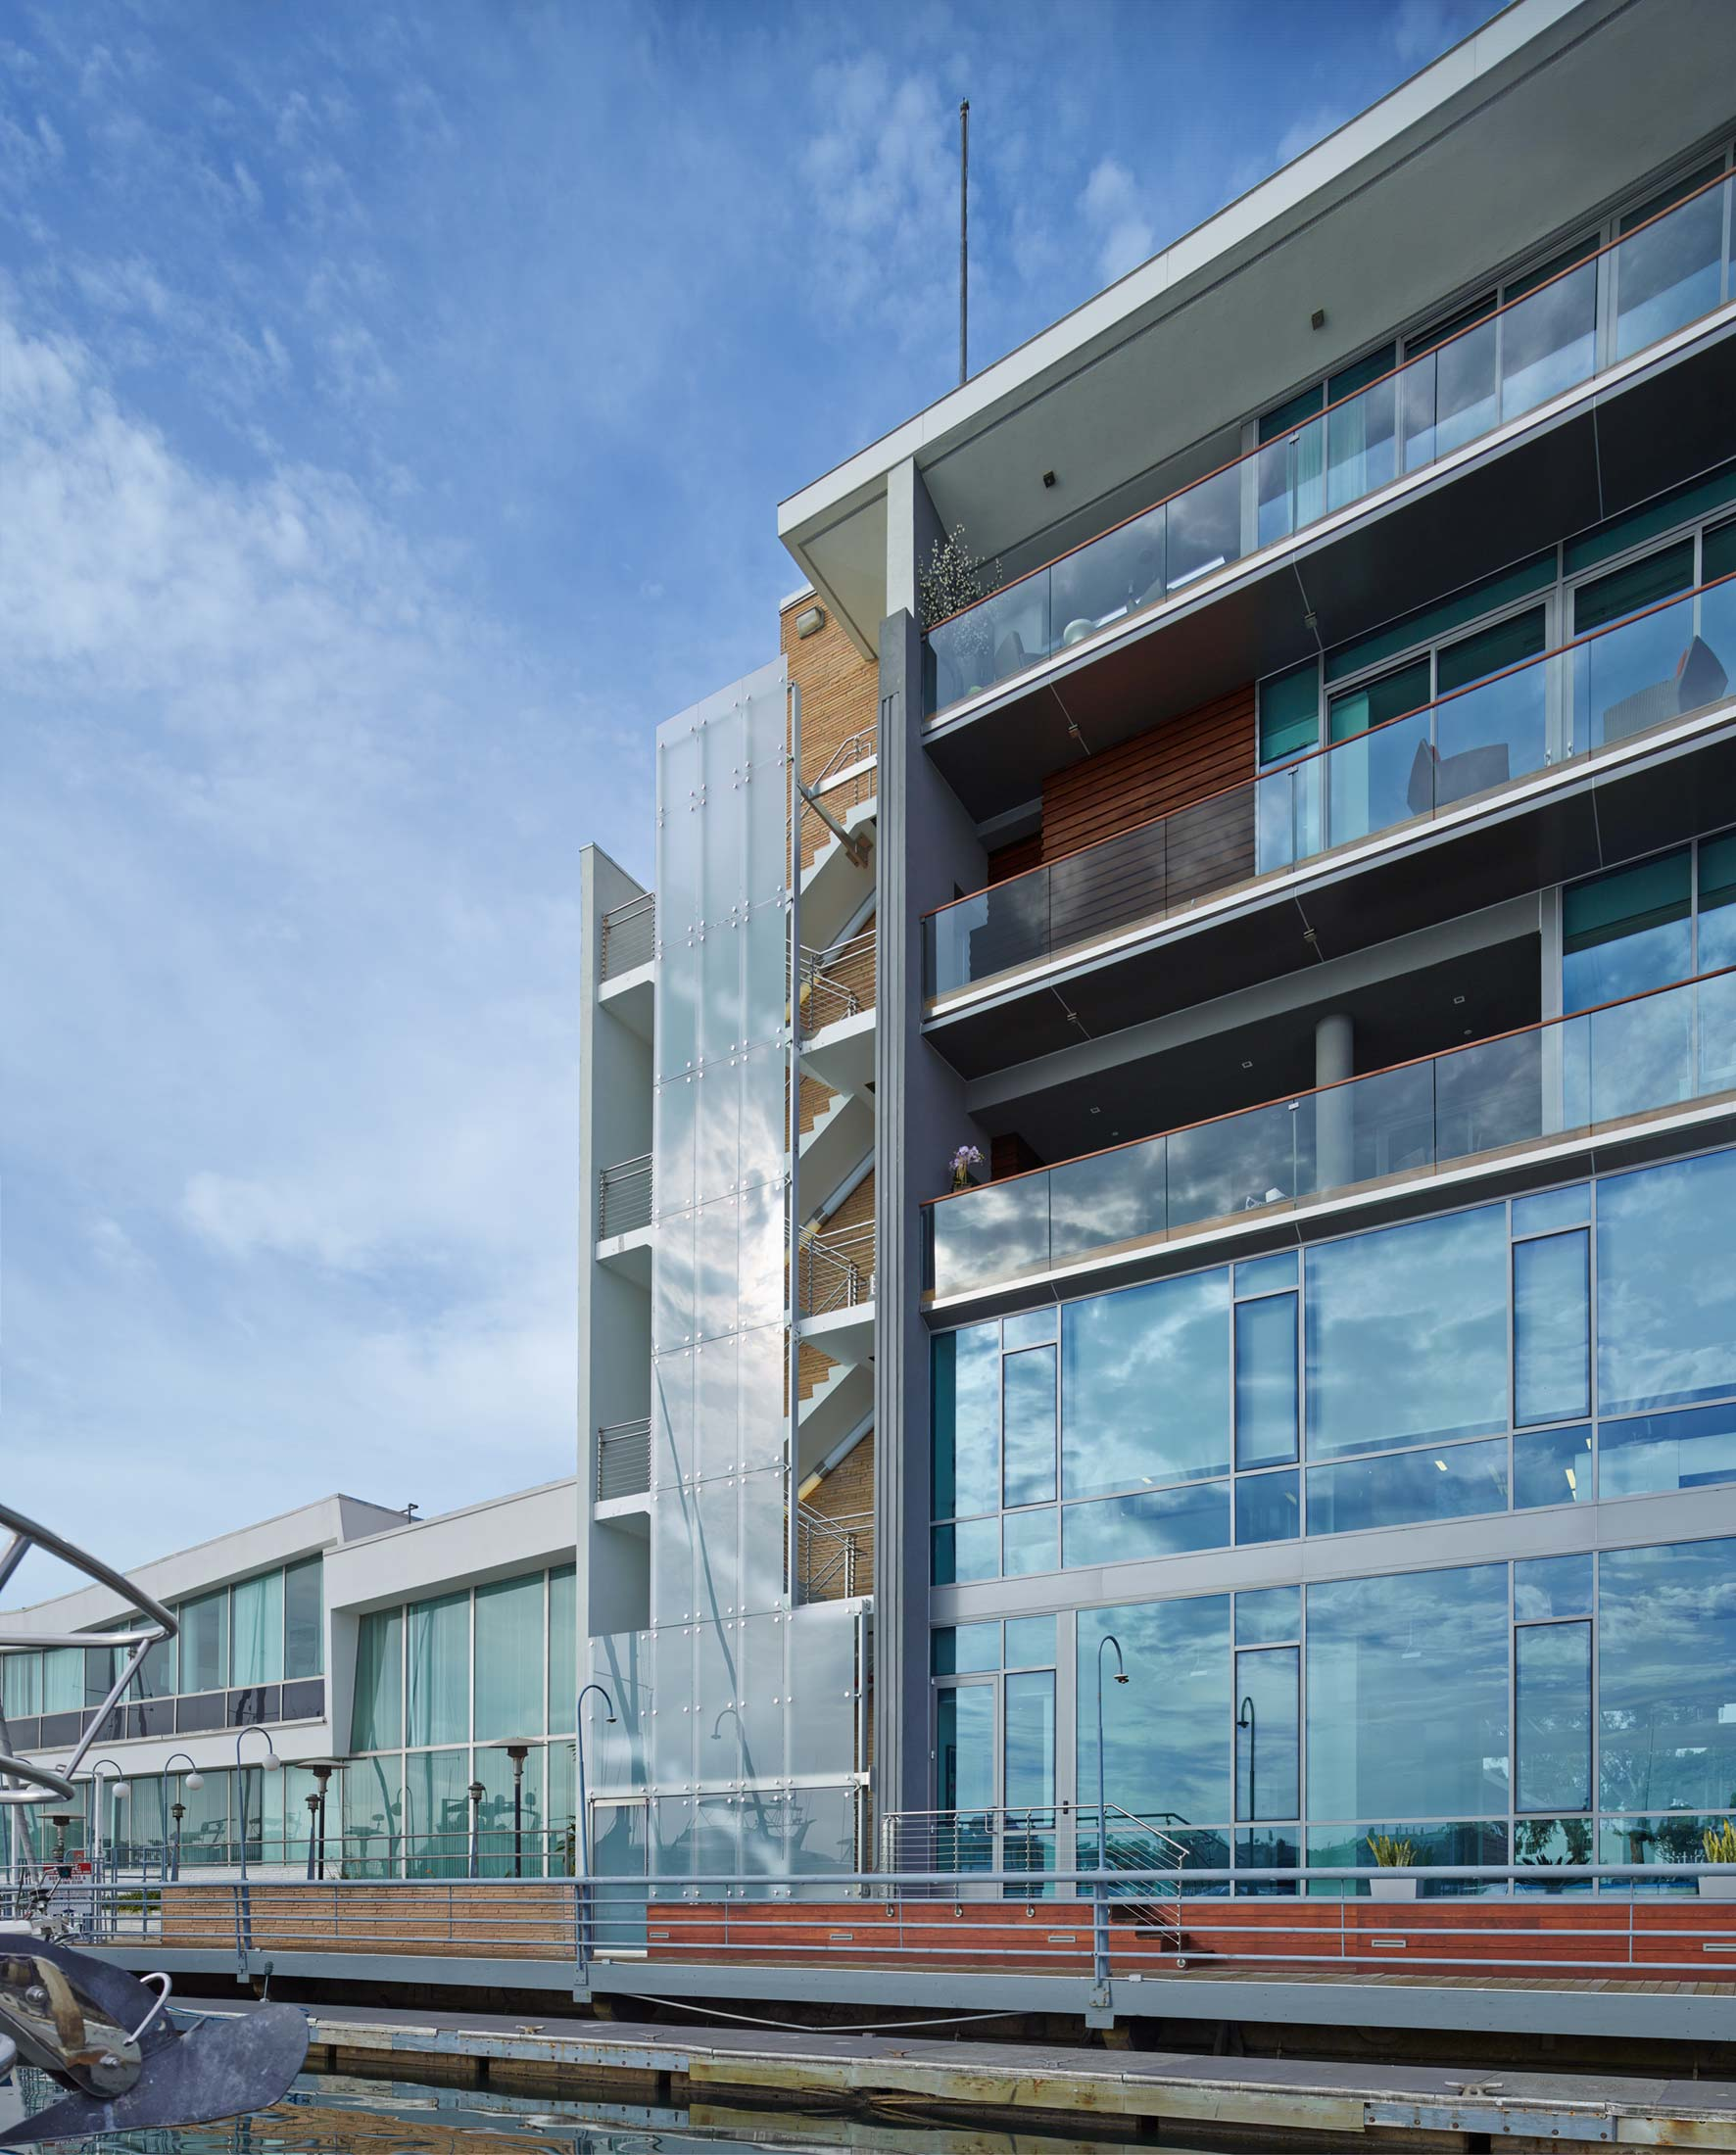 modern-architecture-building-mixed-use-office-residential-shubindonaldson-via-lido-mixed-use-5